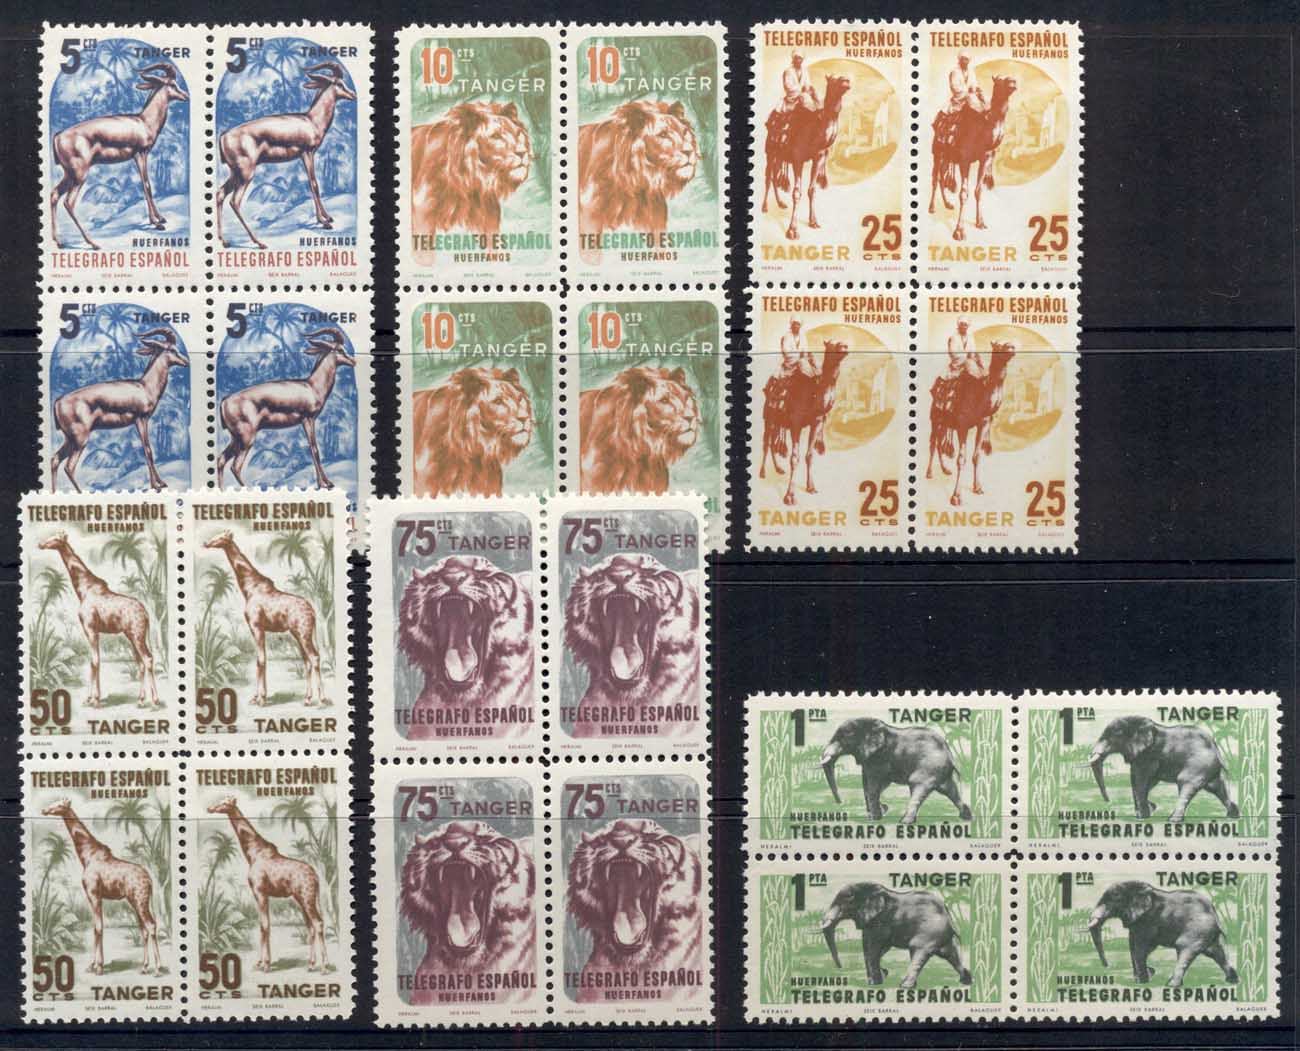 Tangier 1946 Telegraph, Wildlife 1st issue blk4 MUH